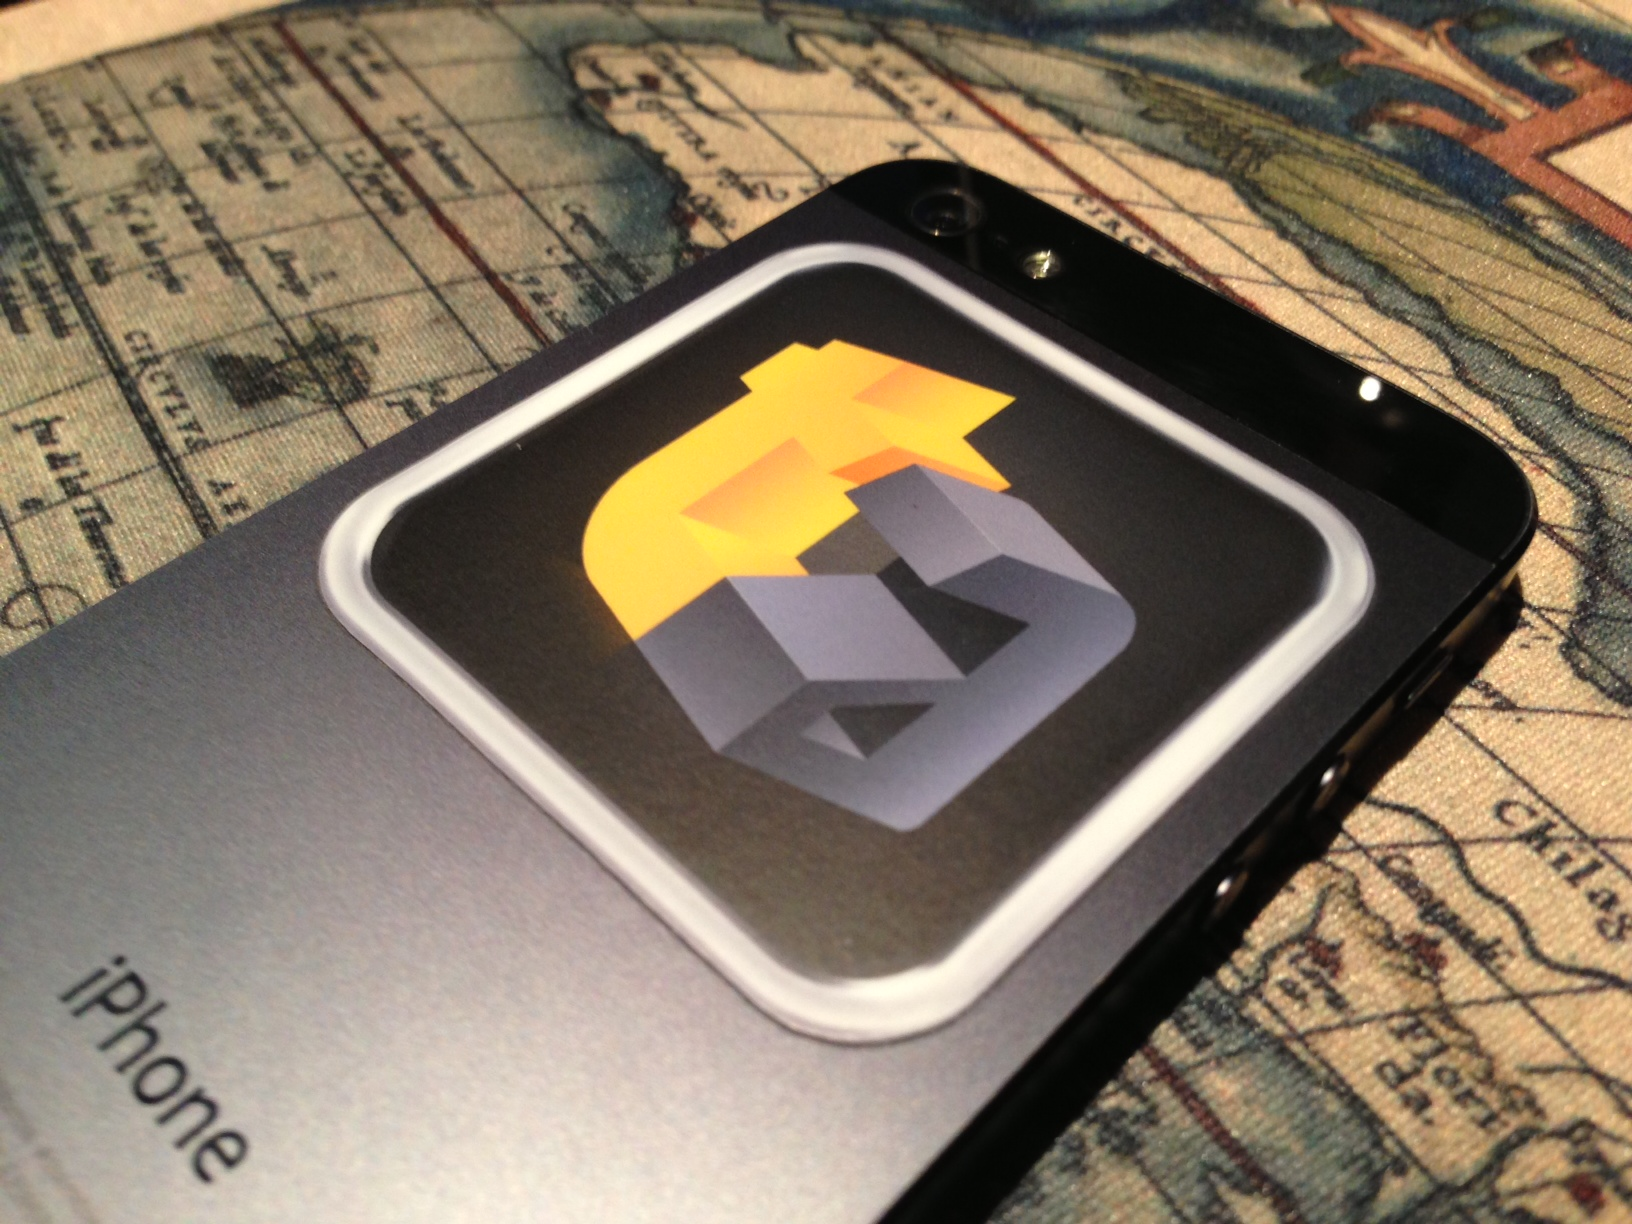 Developer psa get 2″ x 2″ custom app icon stickers for 50 off from